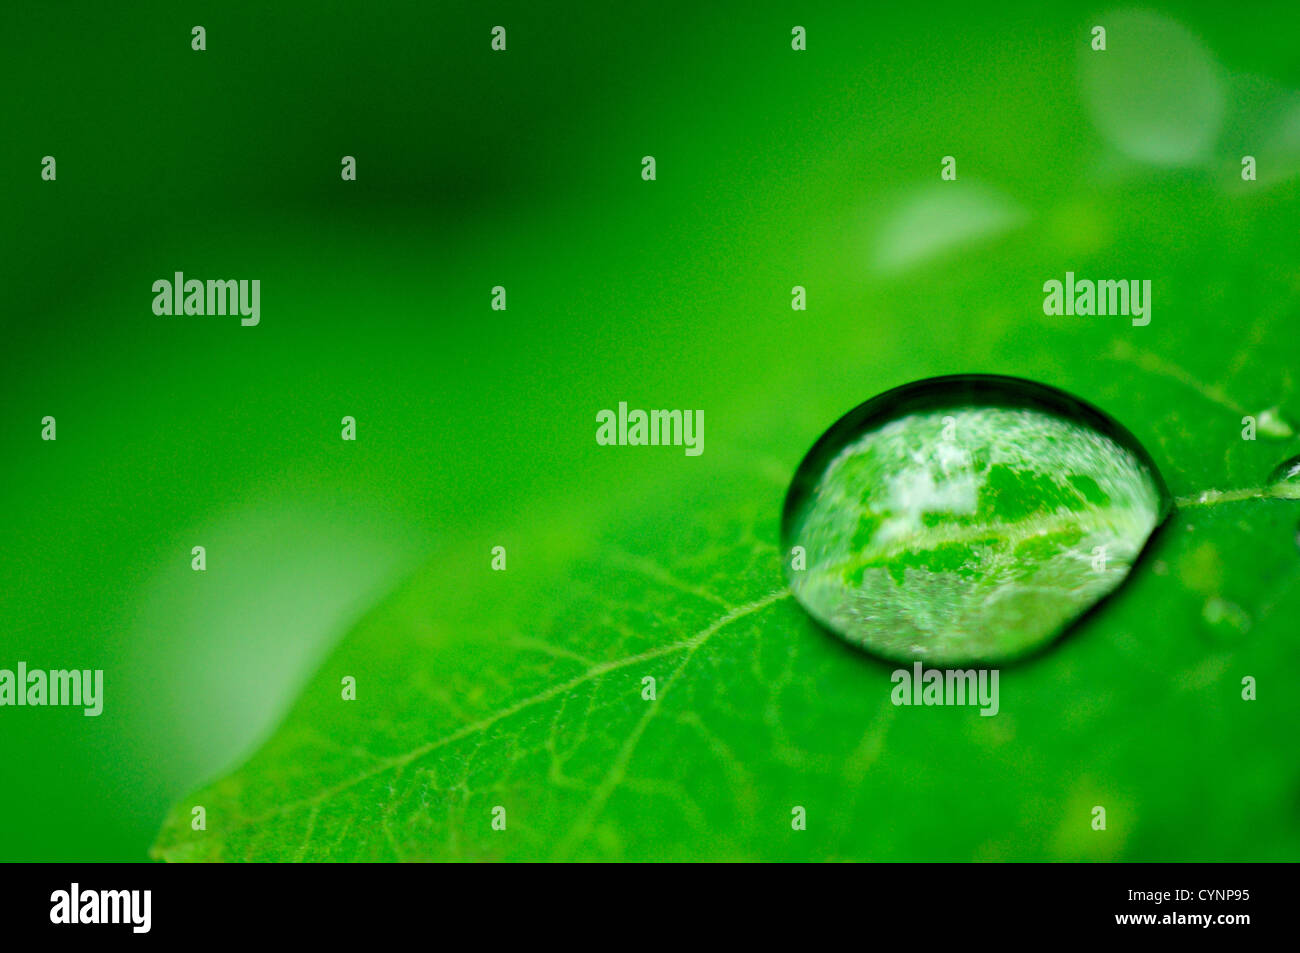 Close-up of a water droplet on a leaf. - Stock Image